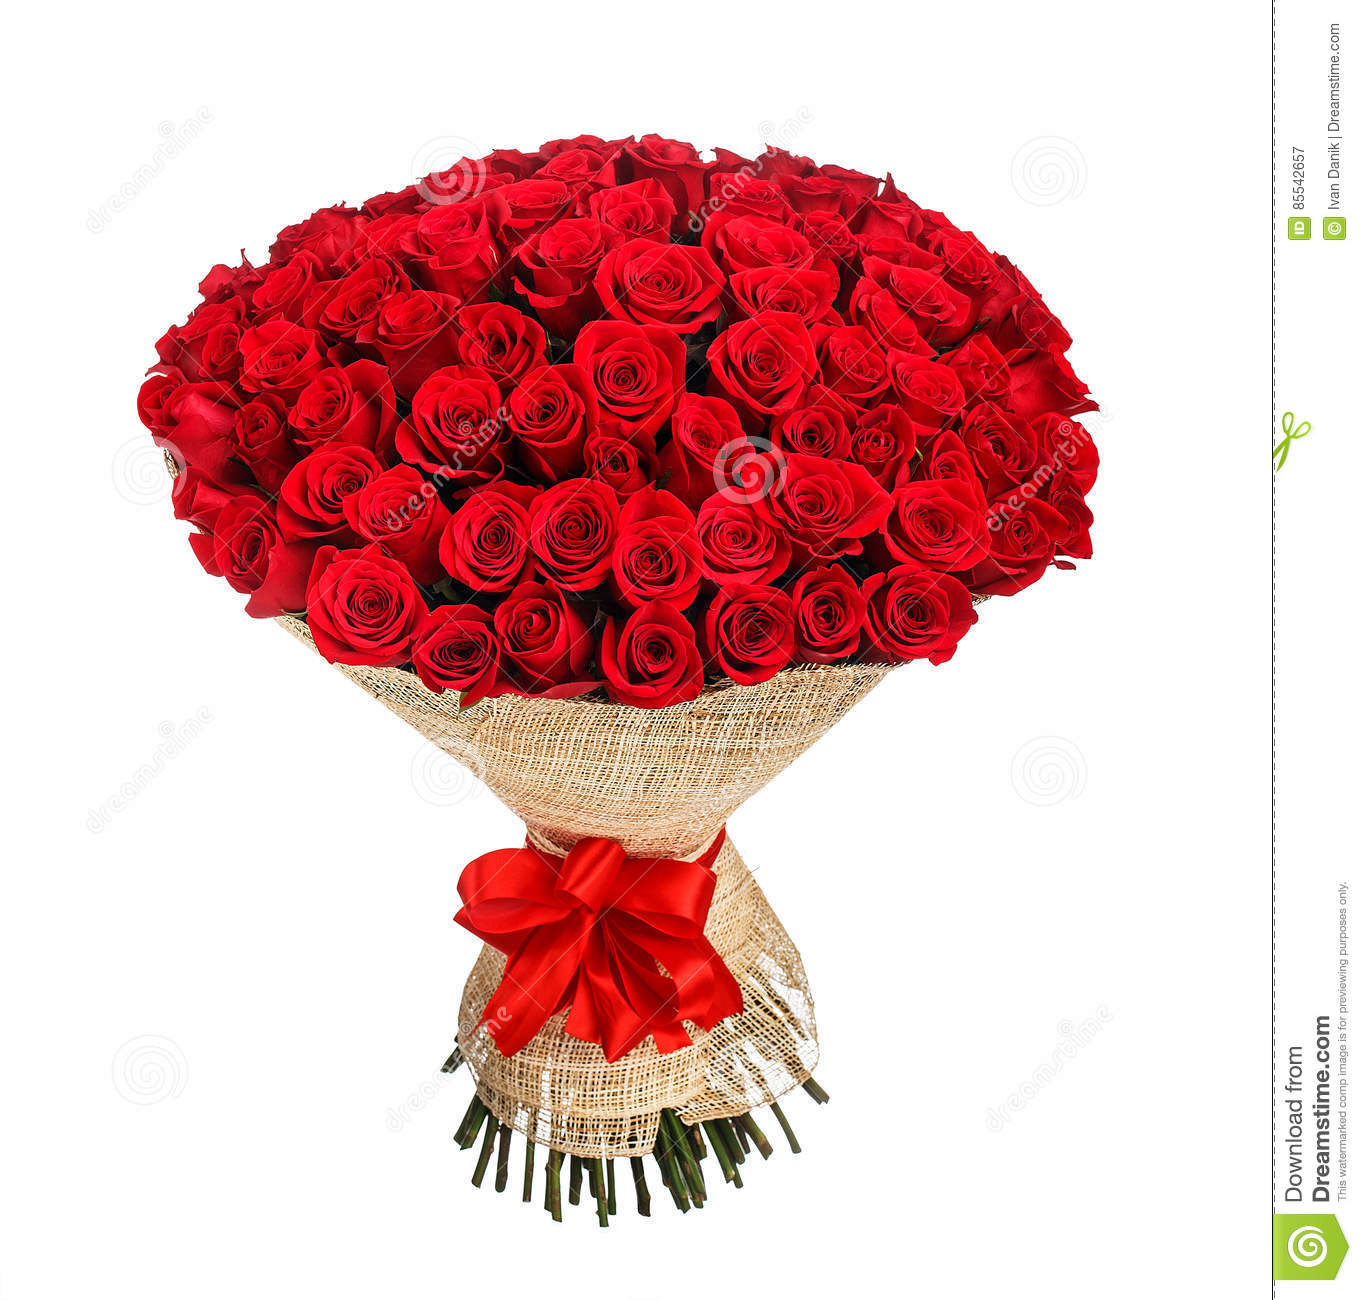 Flower Bouquet Of 100 Red Roses Stock Image - Image of isolated ...